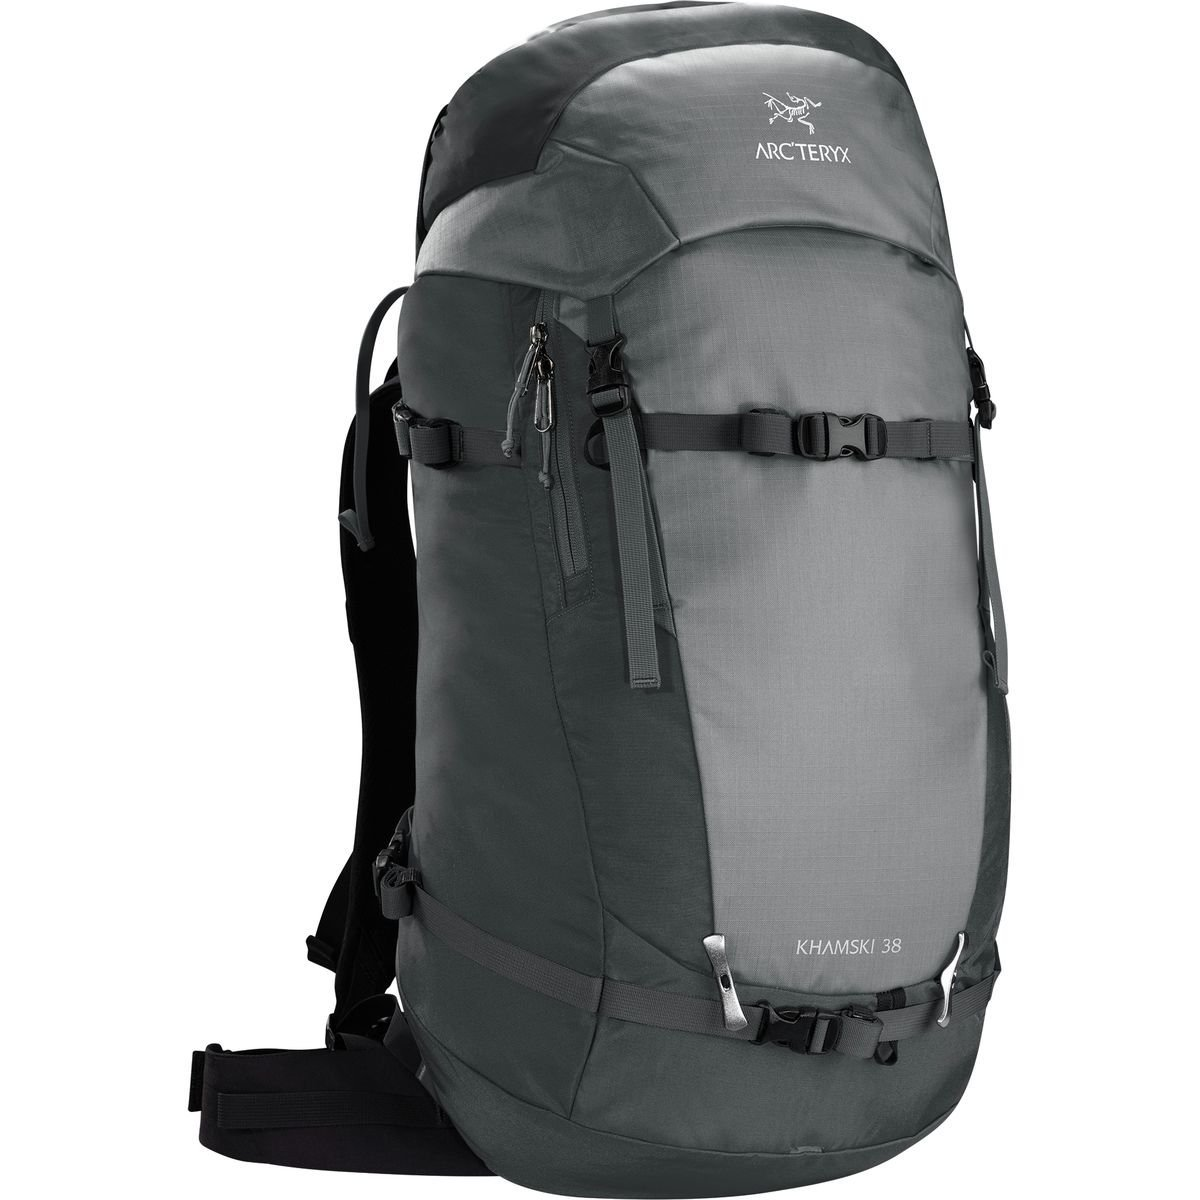 Arc'teryx Khamski 38 Backpack - 2319-2807cu in Mercury, Reg